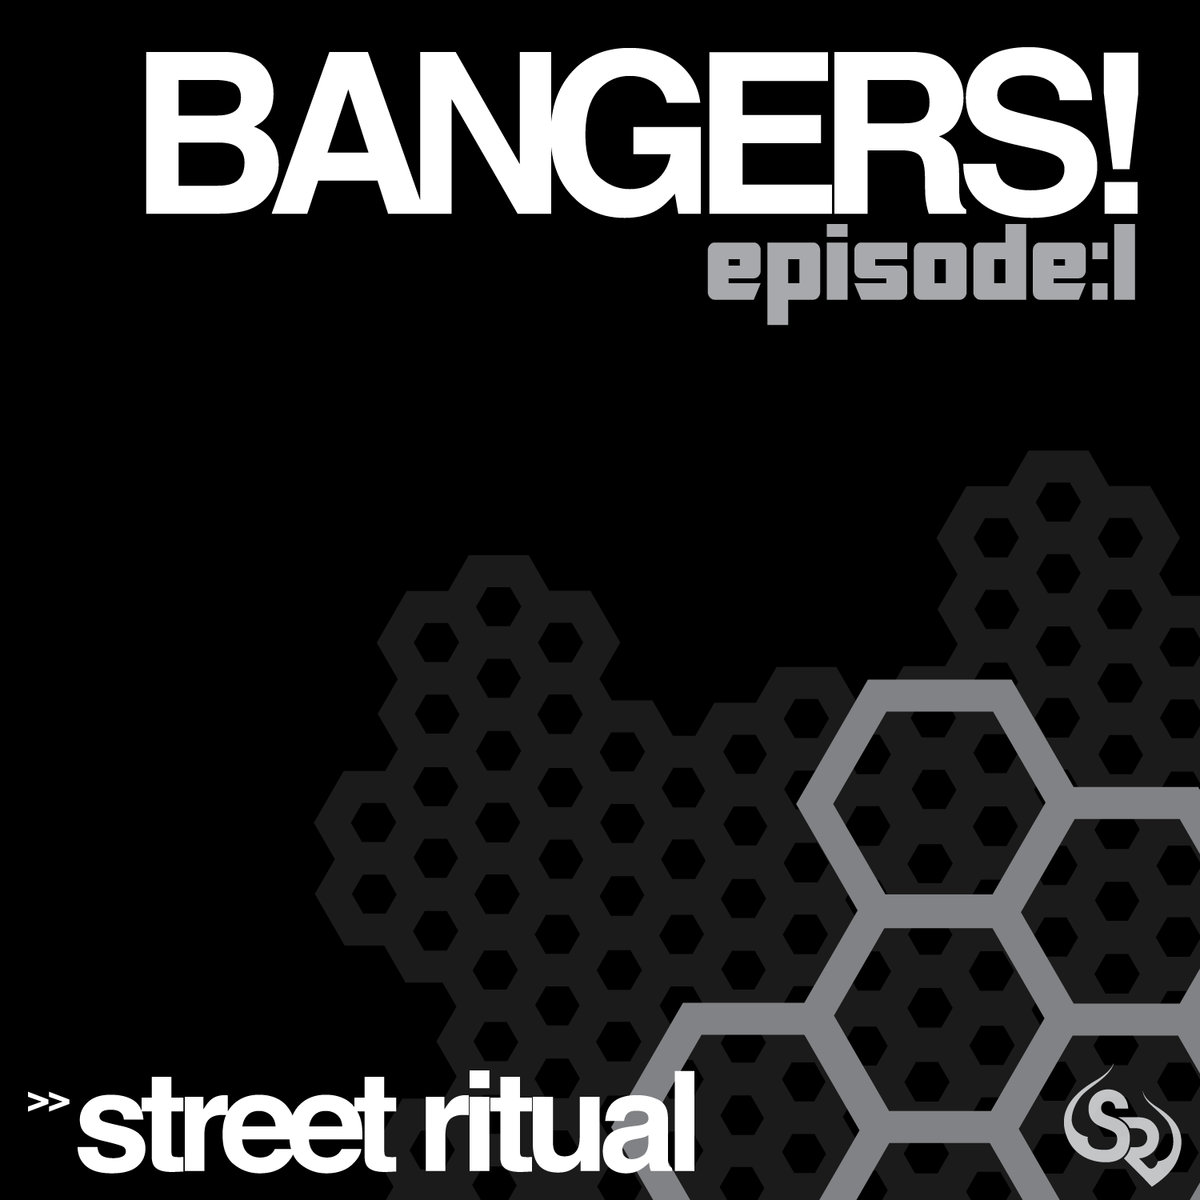 Illuminertia - Cloud Buster @ 'Various Artists - Bangers! Episode:1' album (bass, electronic)